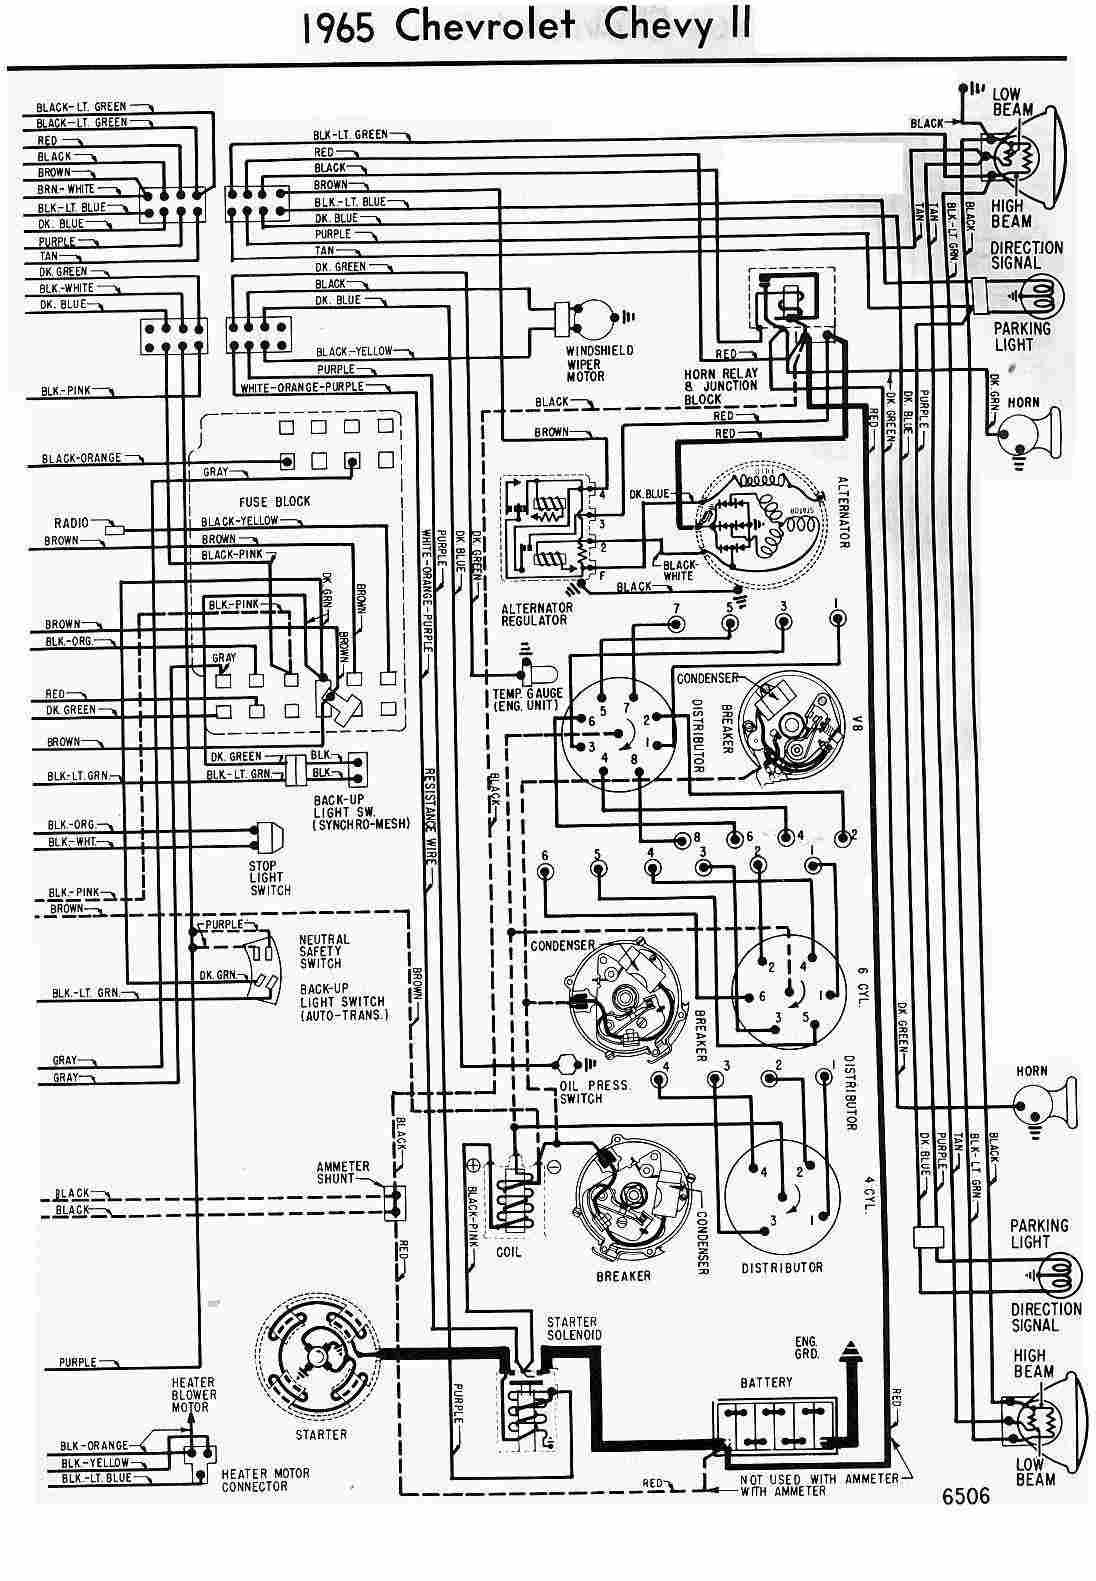 wiring diagrams free image wiring diagram engine schematic wire rh jadecloud co 1964 Chevelle Wiring Schematic 1966 Chevelle Wiring Schematic